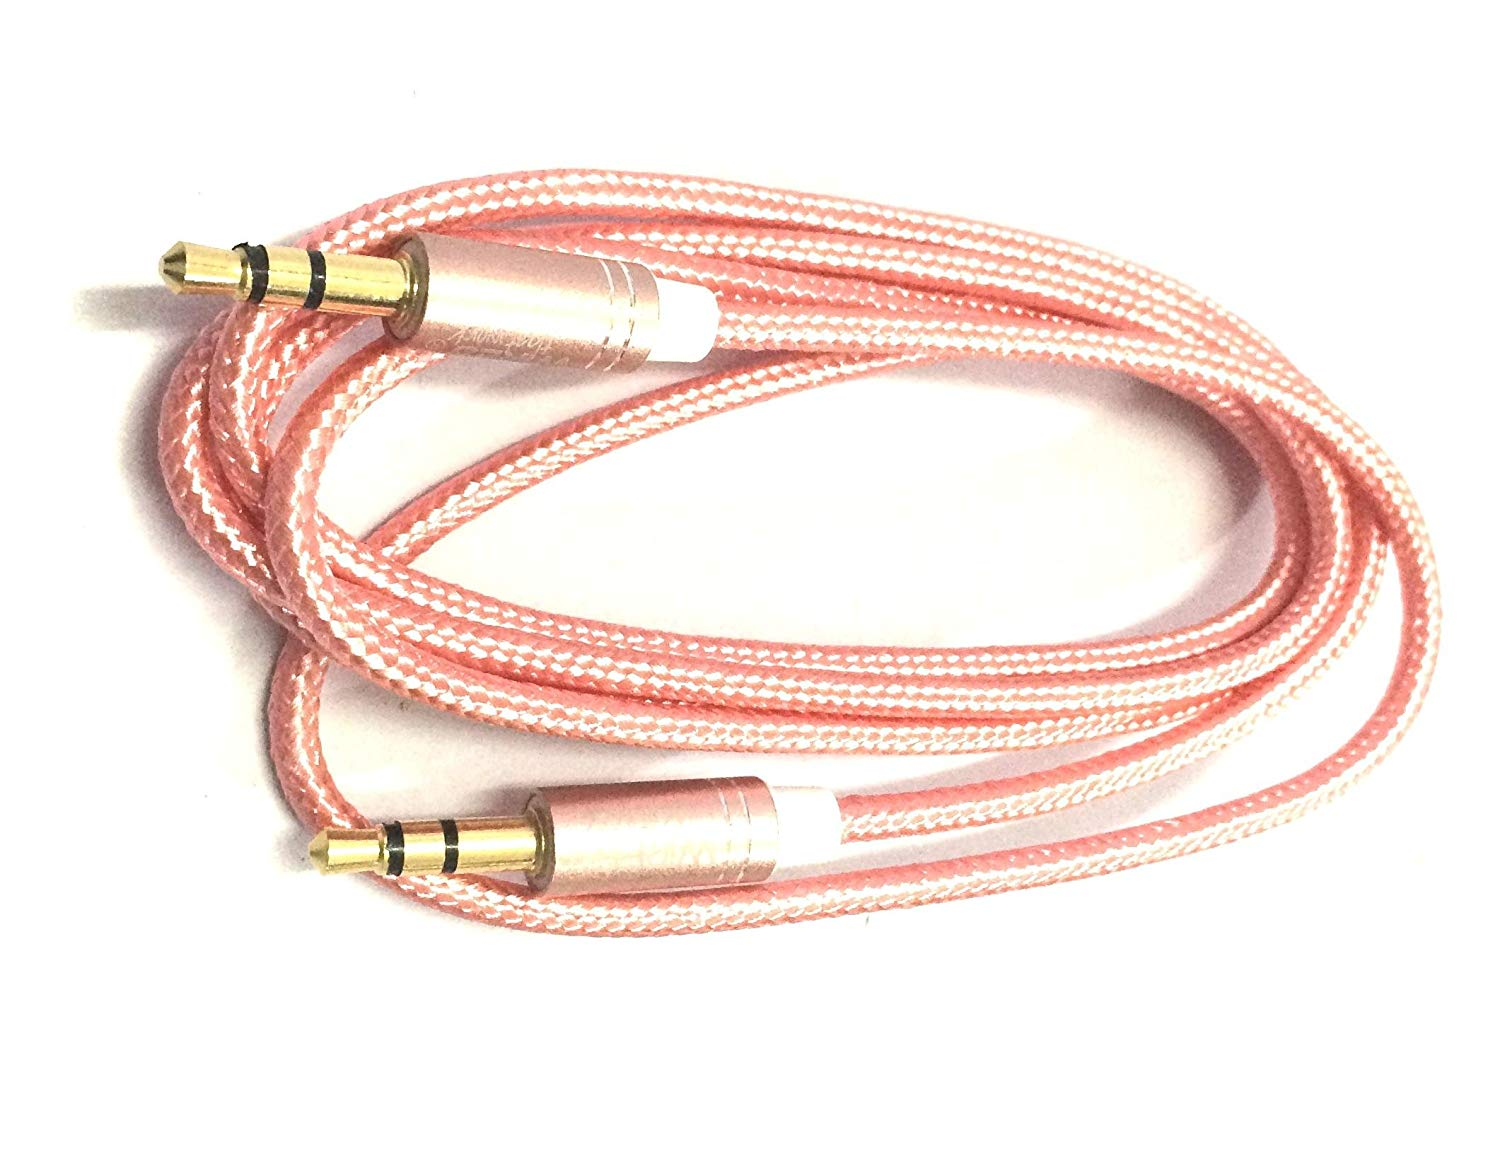 Detec Nylon Braided Aux Cable - Audio Cable - 1 Meter - Pink- Gold Plated Connectors